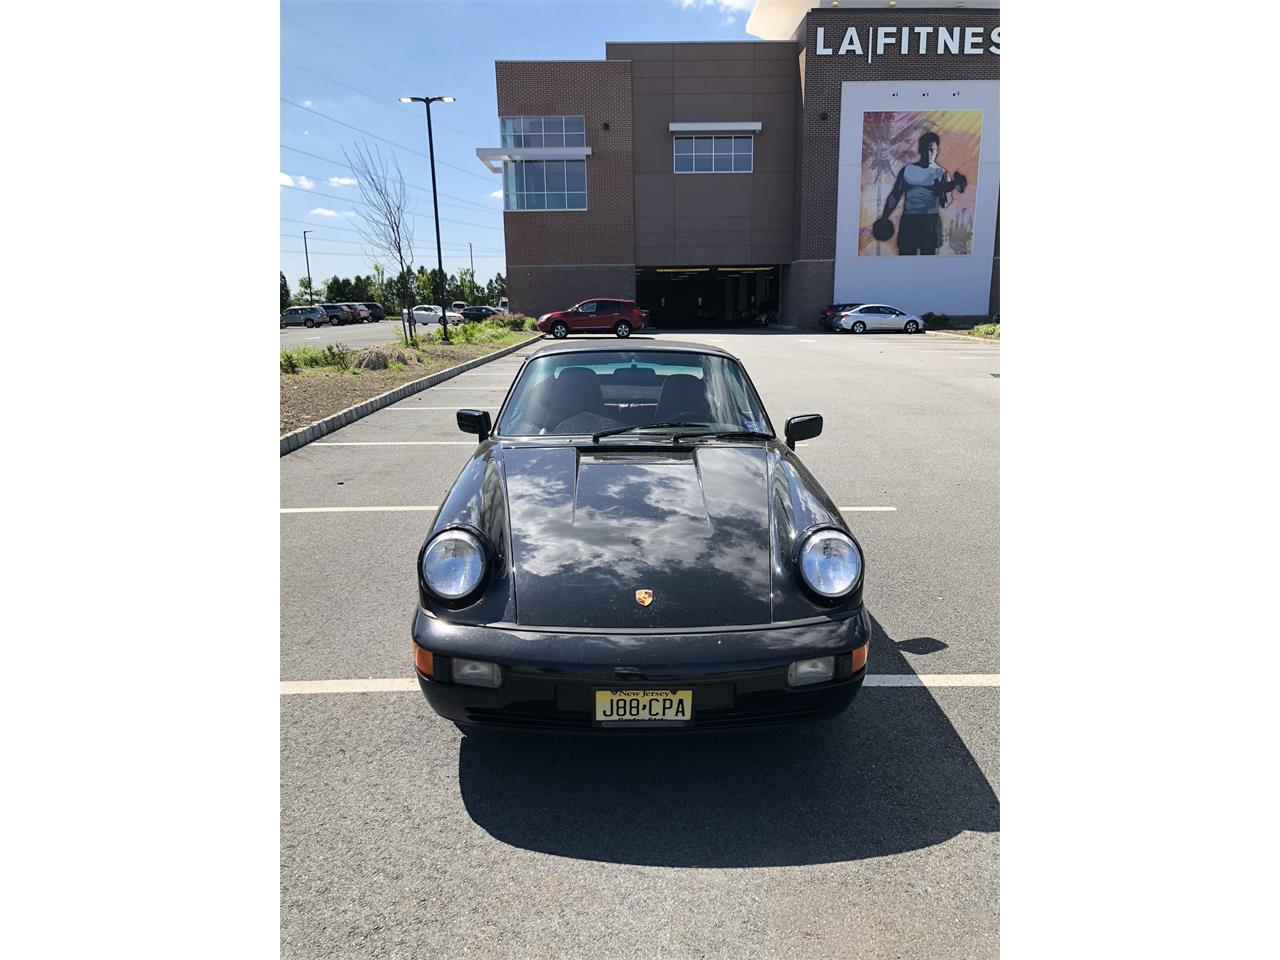 Large Picture of 1991 Porsche 911 Carrera 4 Cabriolet located in New Jersey Offered by a Private Seller - NLN4